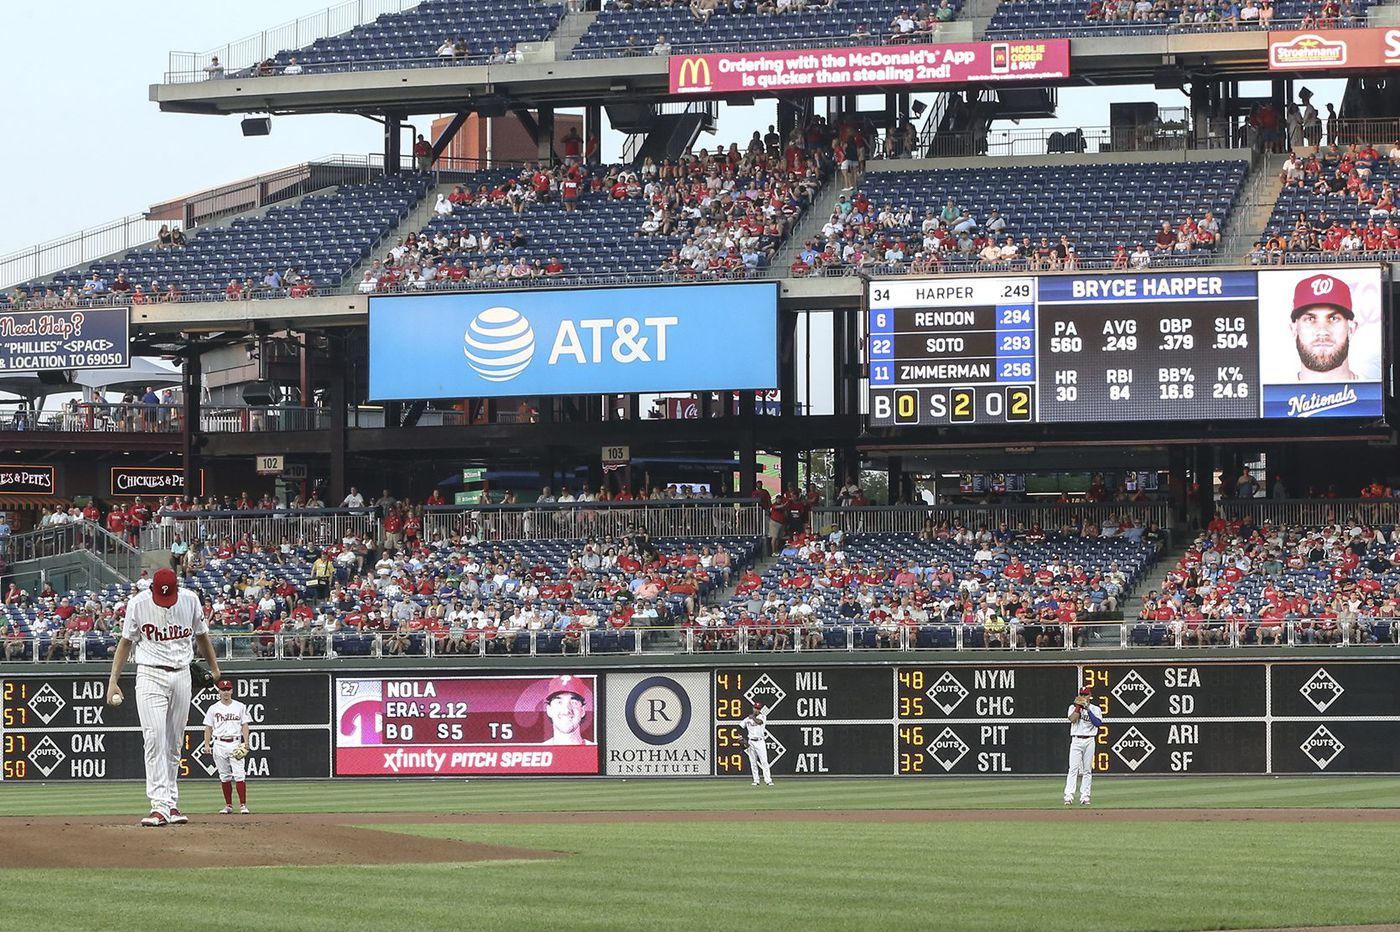 Another indication that the Phillies are braced for an offseason star search | Extra Innings